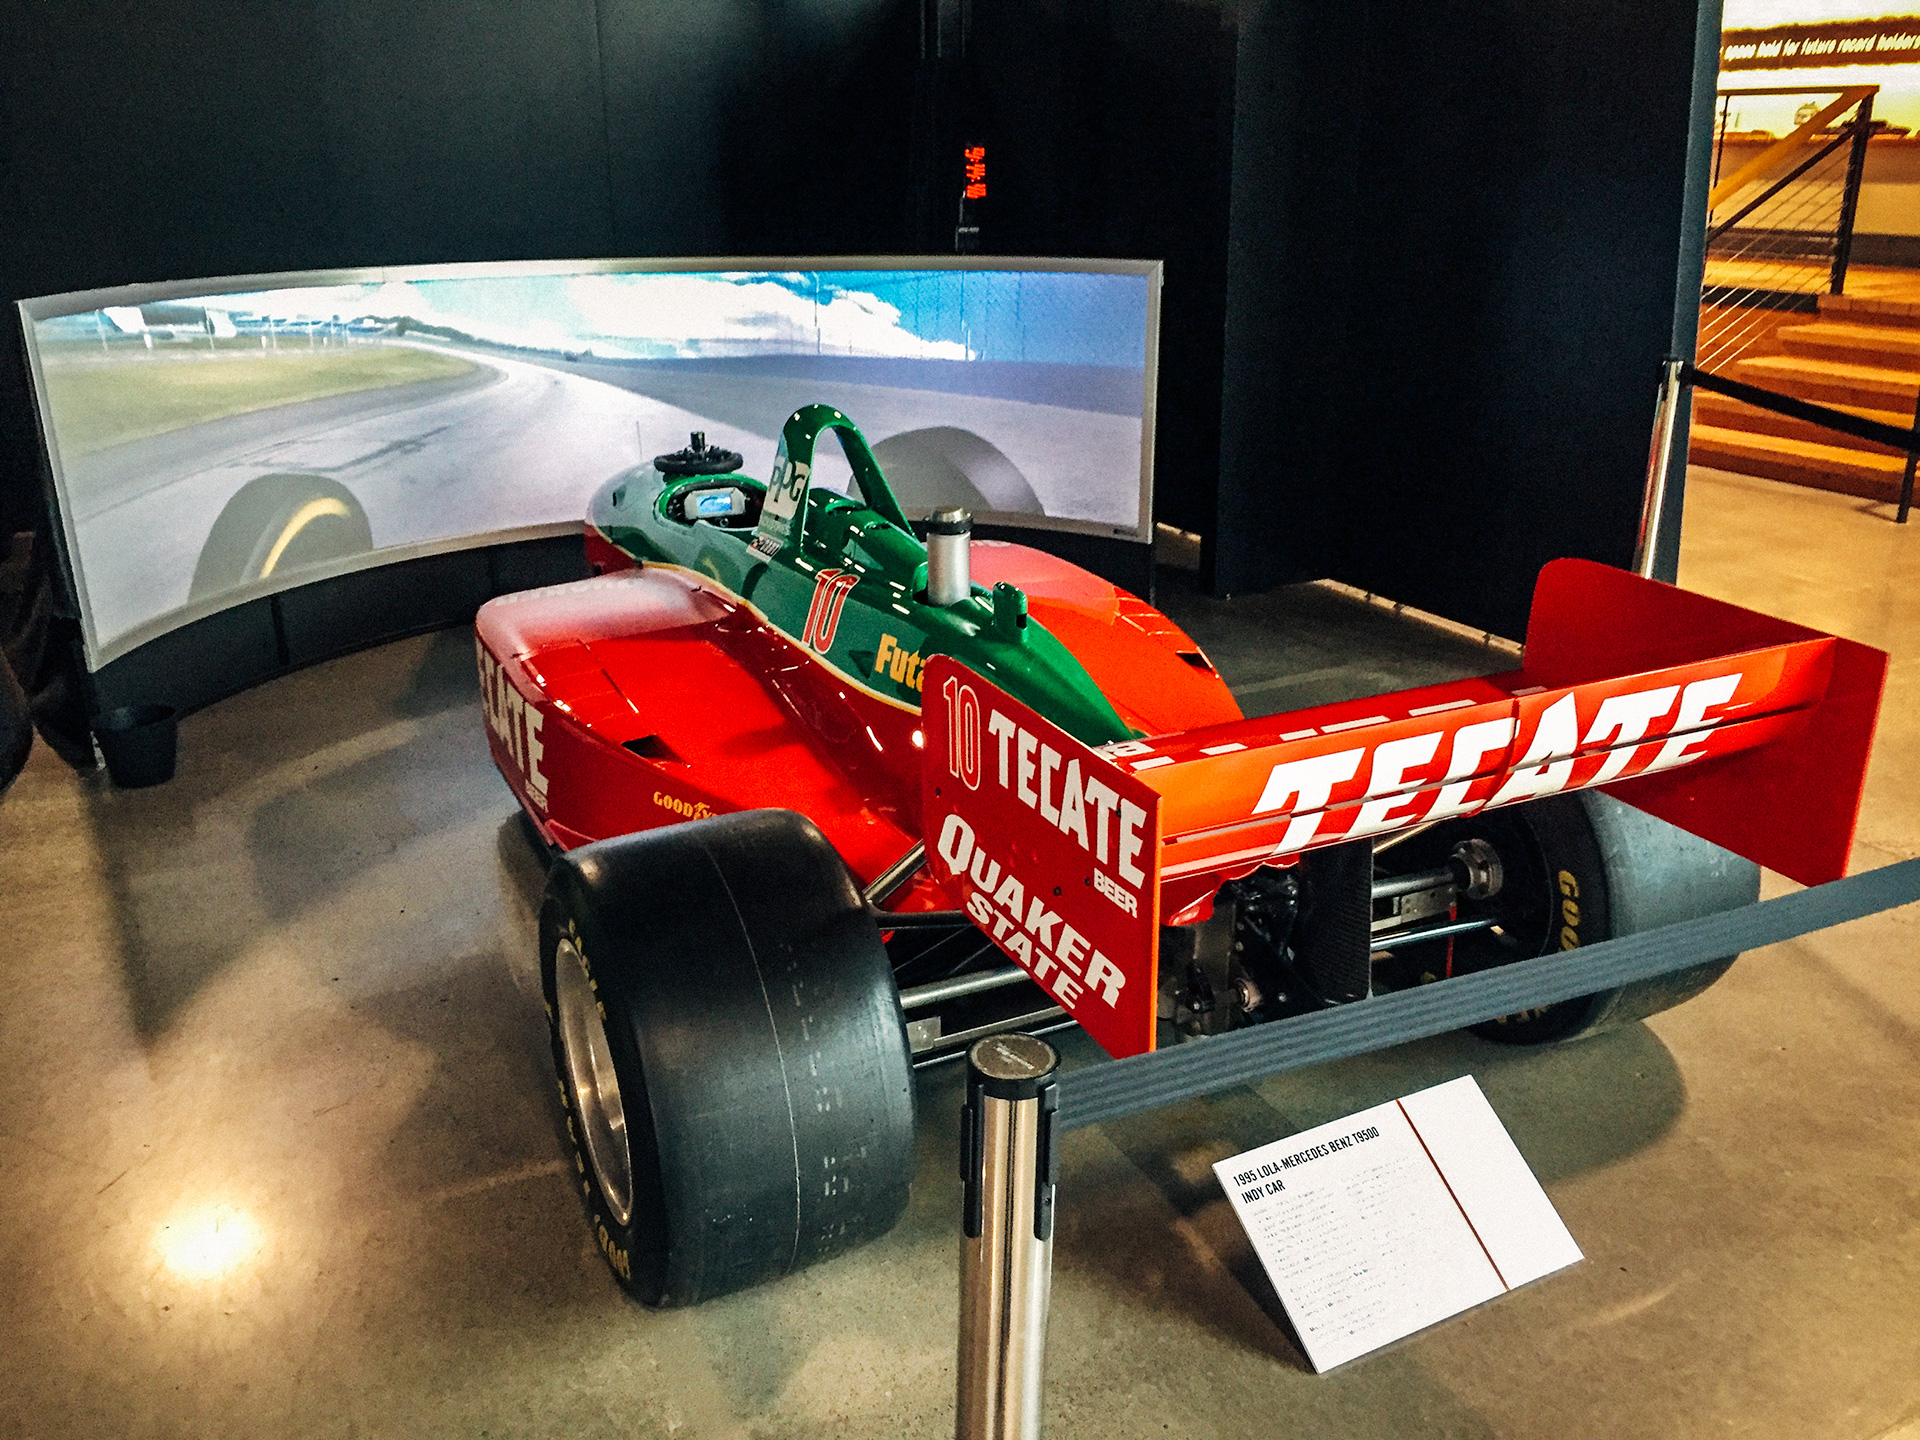 1995 Lola-Mercedes Benz T9500 Indy car simulator at the World of Speed Museum